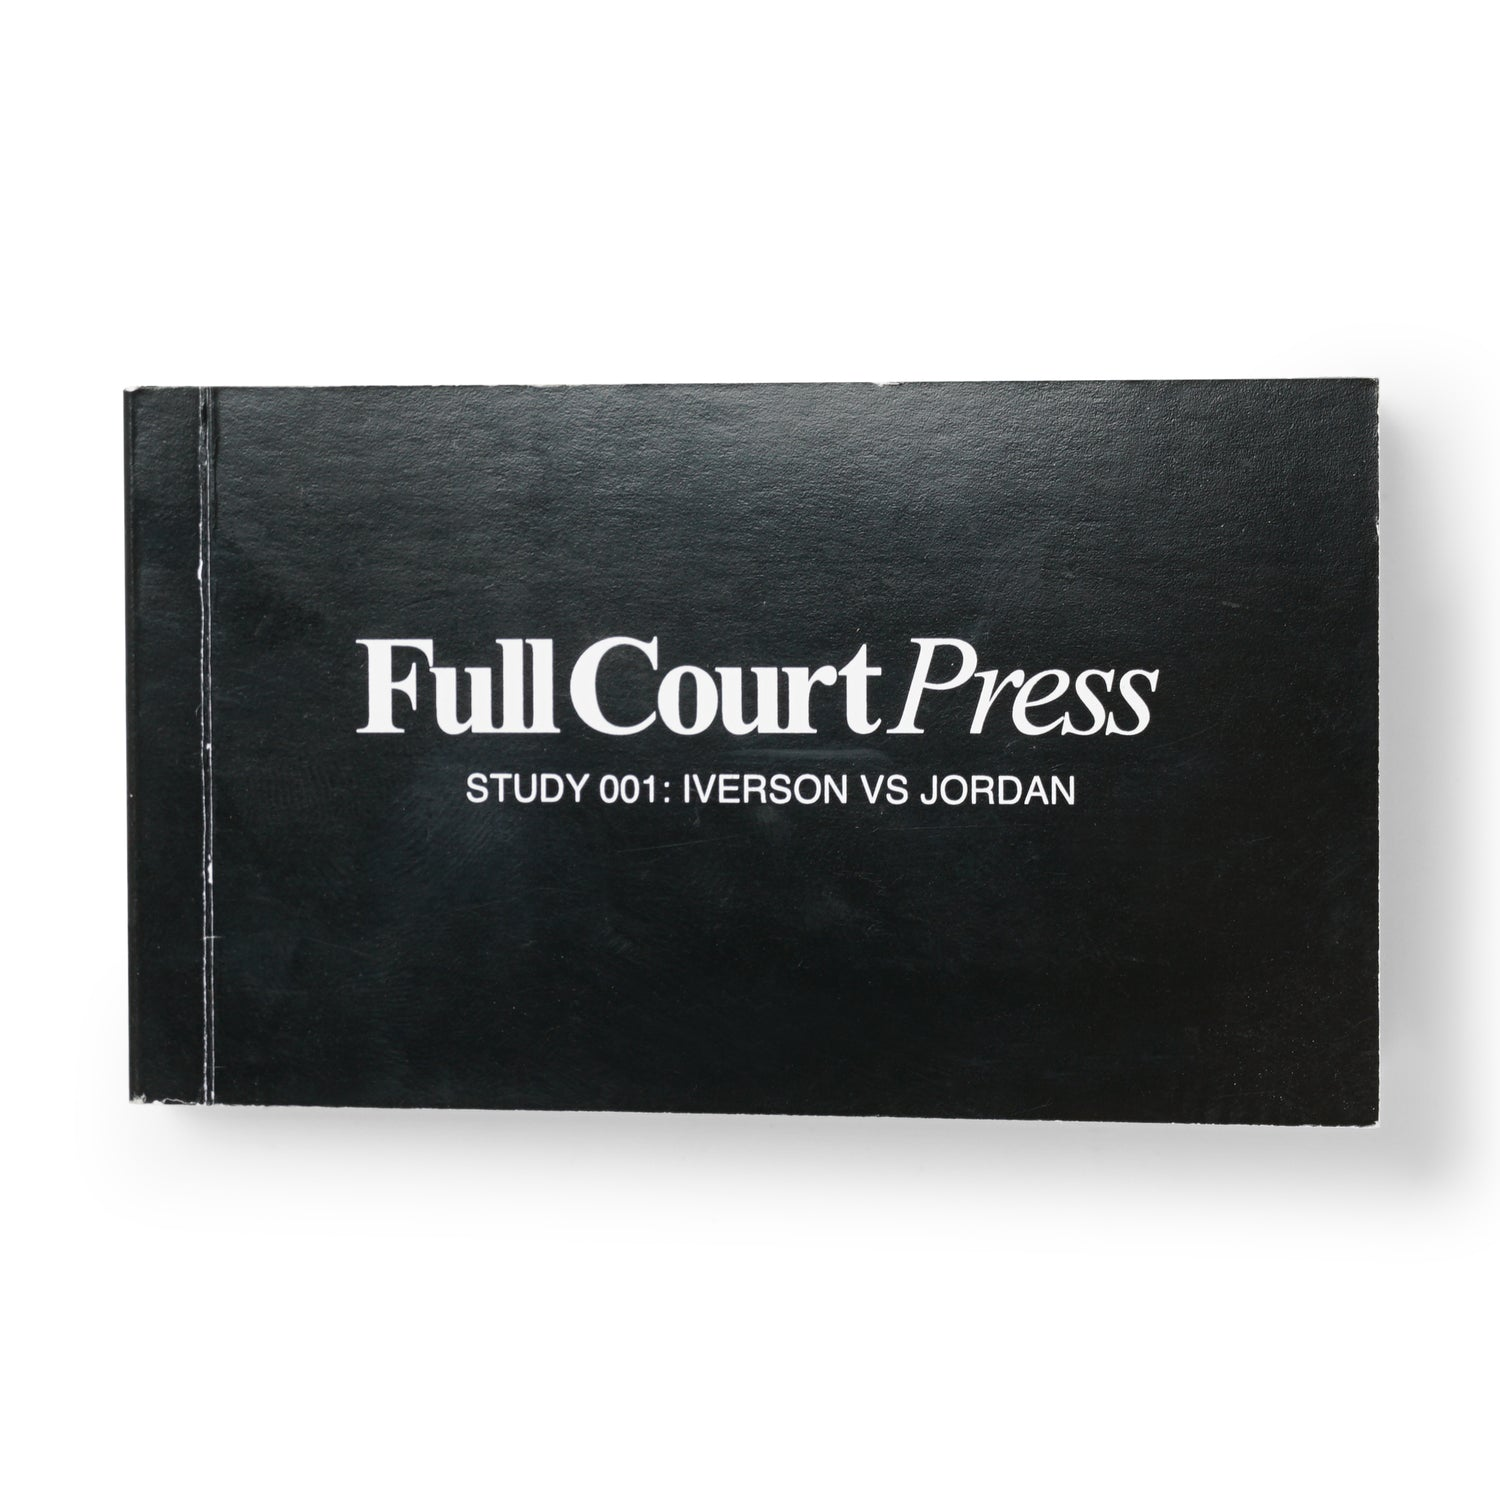 Full Court Press Study 001: Iverson vs Jordan